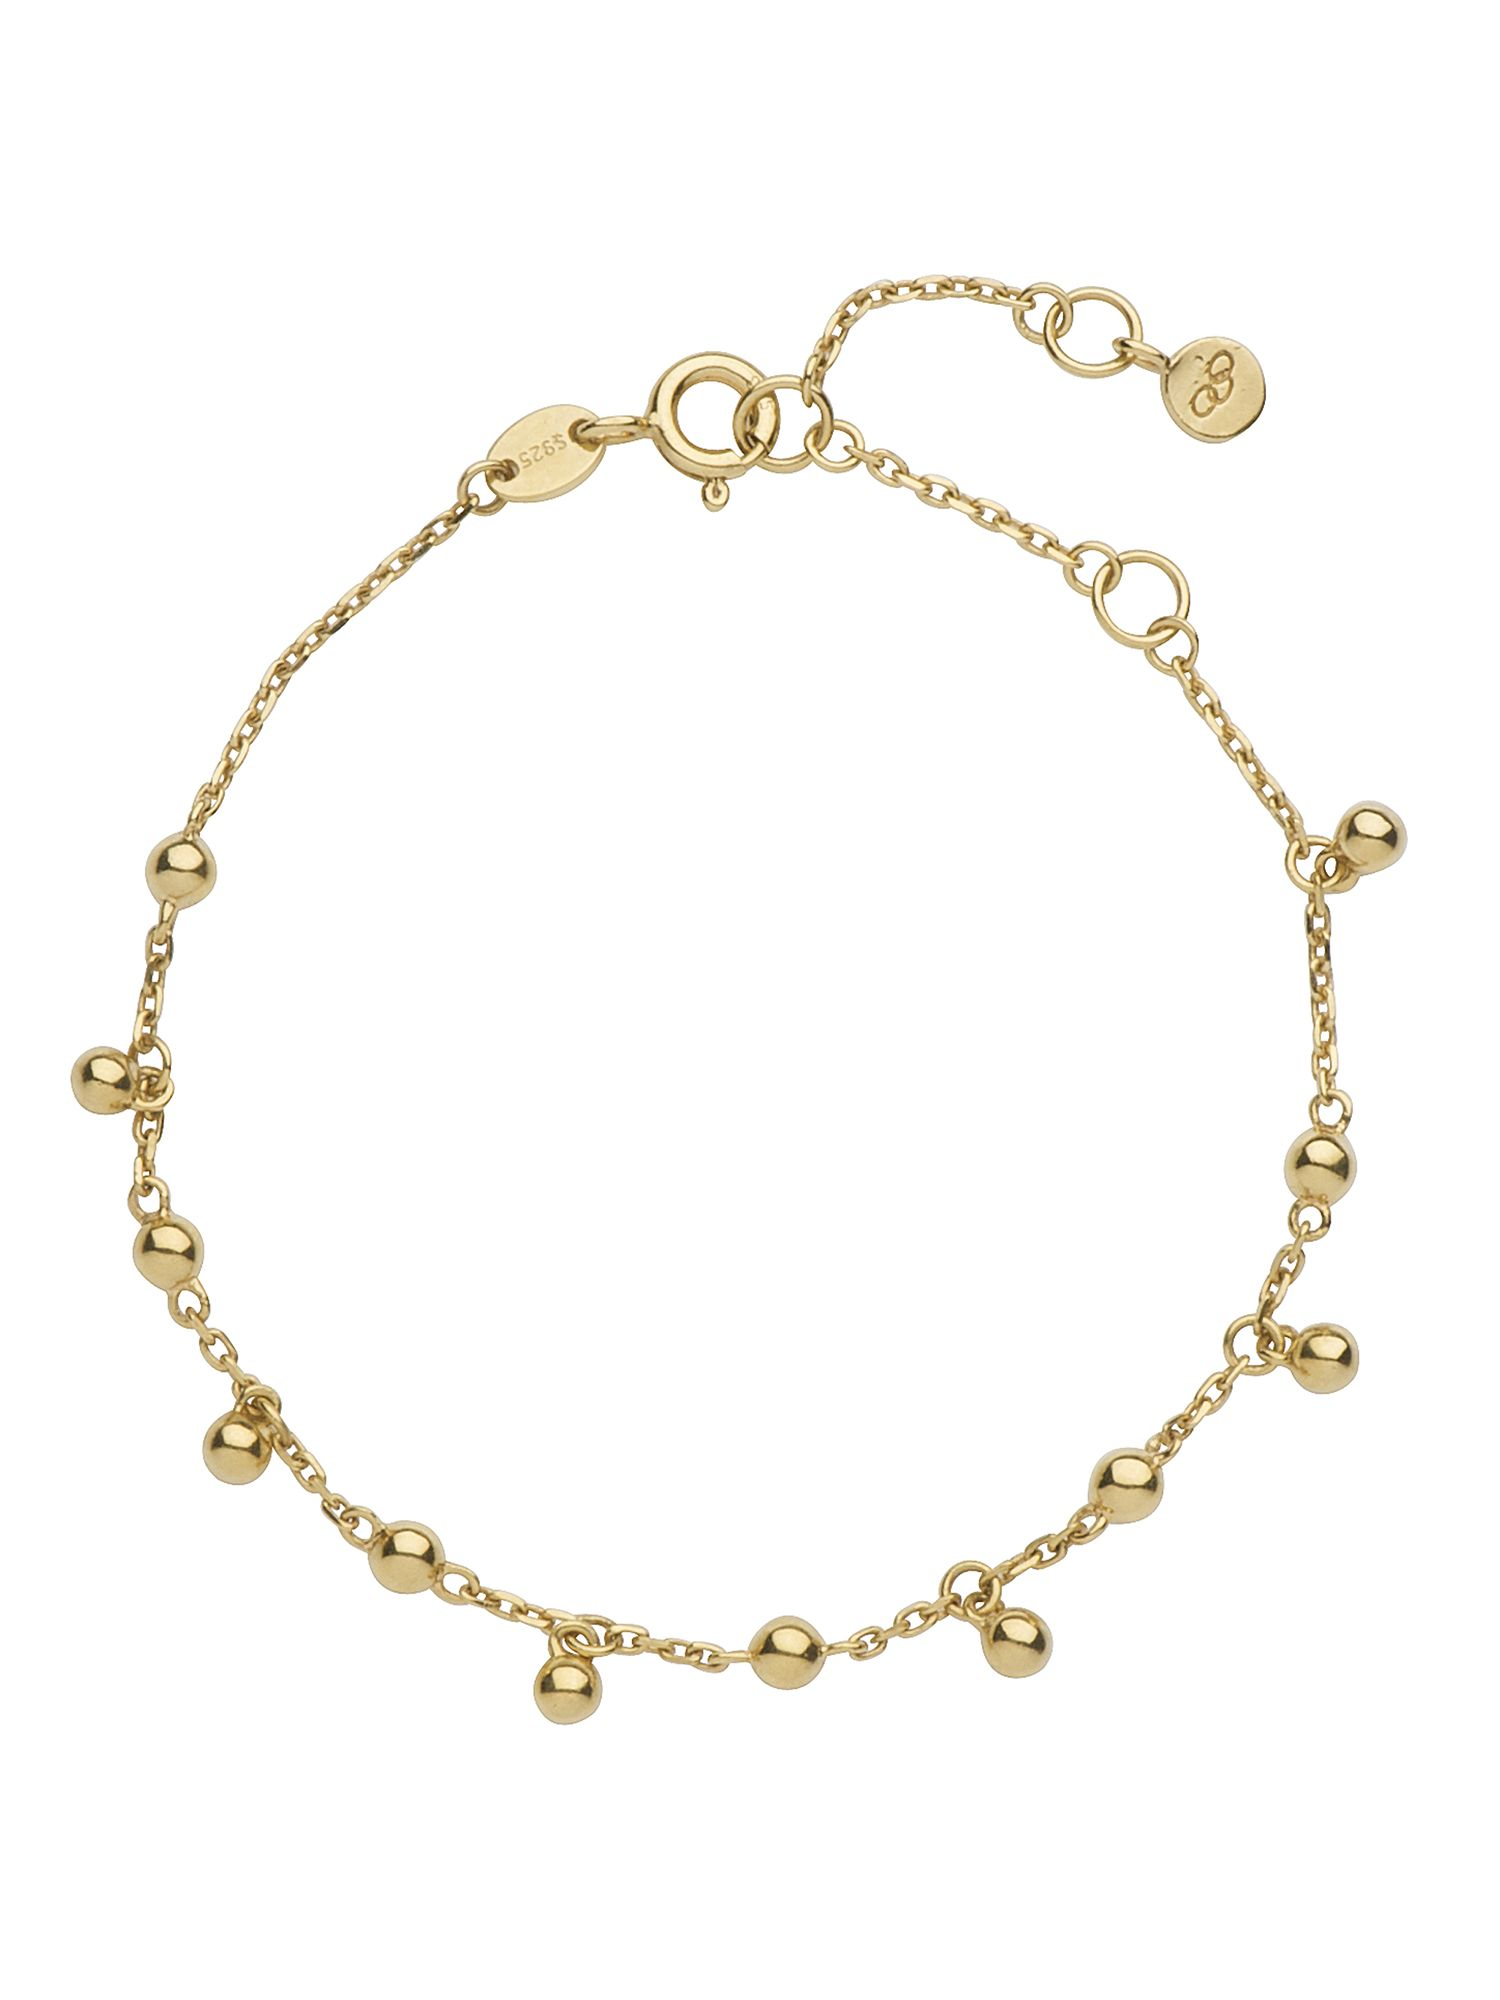 Effervescence bubble 18ct gold bracelet